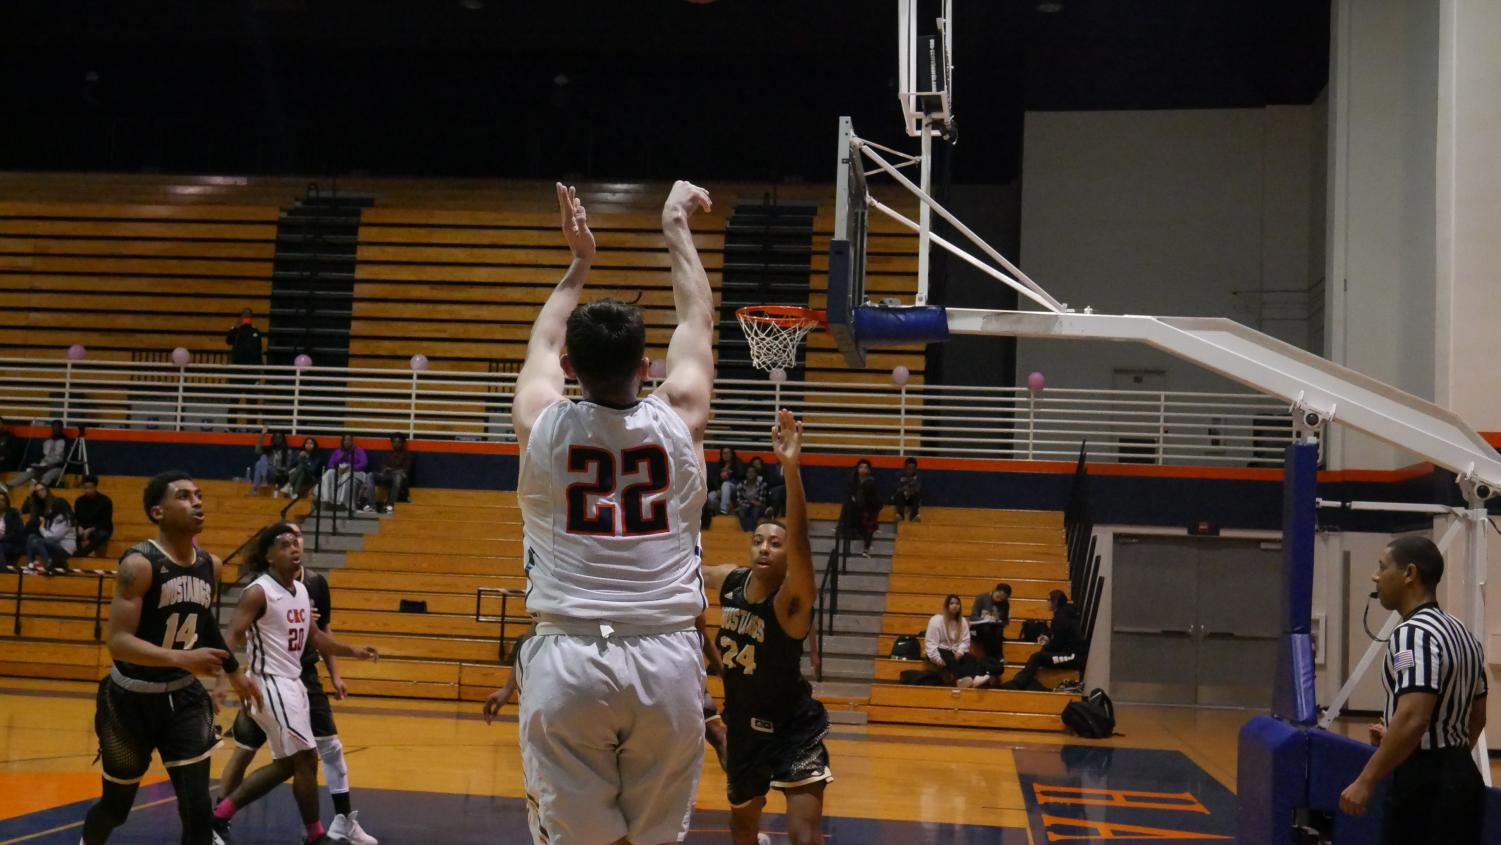 Gor Mikayelyan shooting a three in a 57-45 loss to Delta College